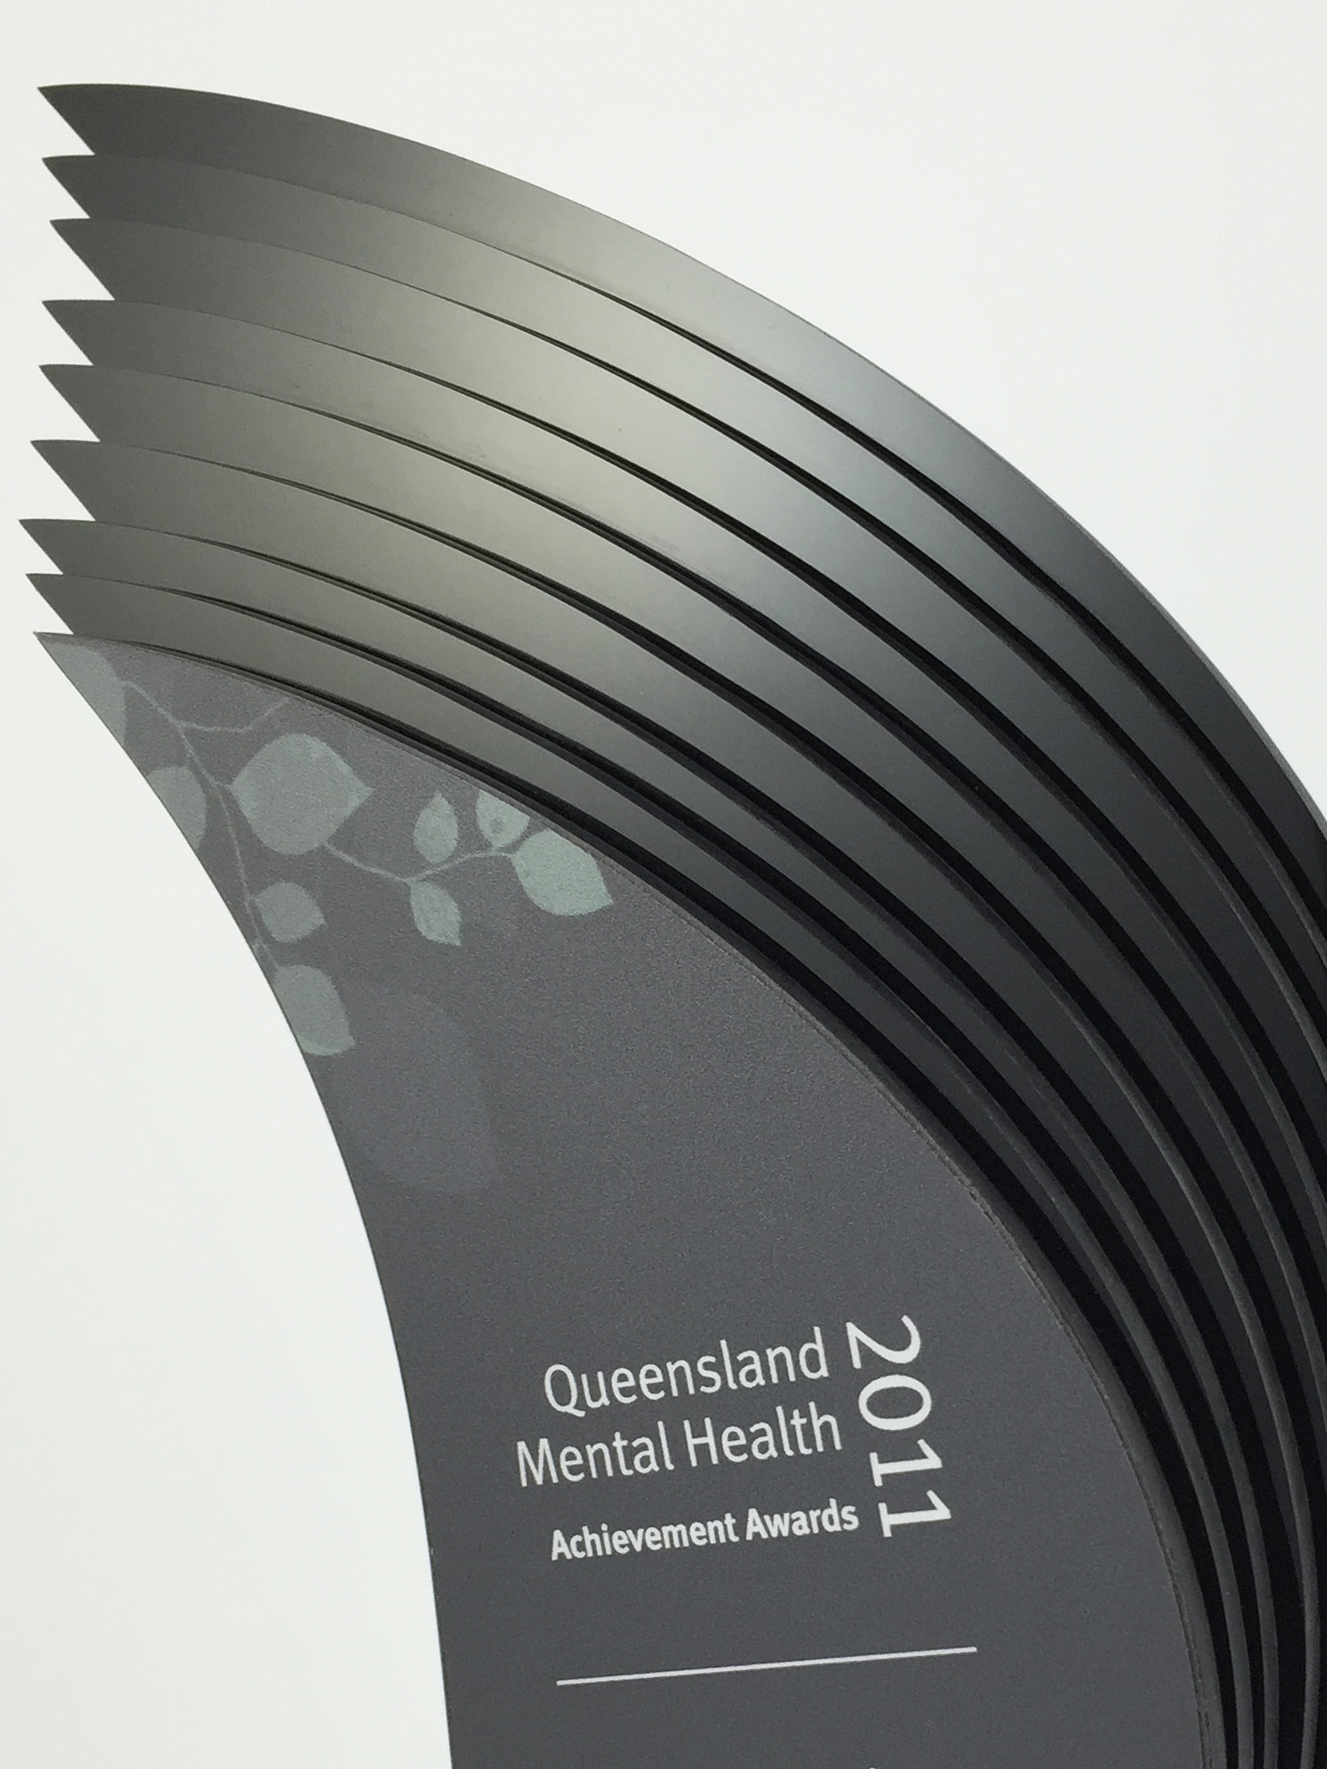 qld-mental-health-acrylic-trophy-awards-02.jpg